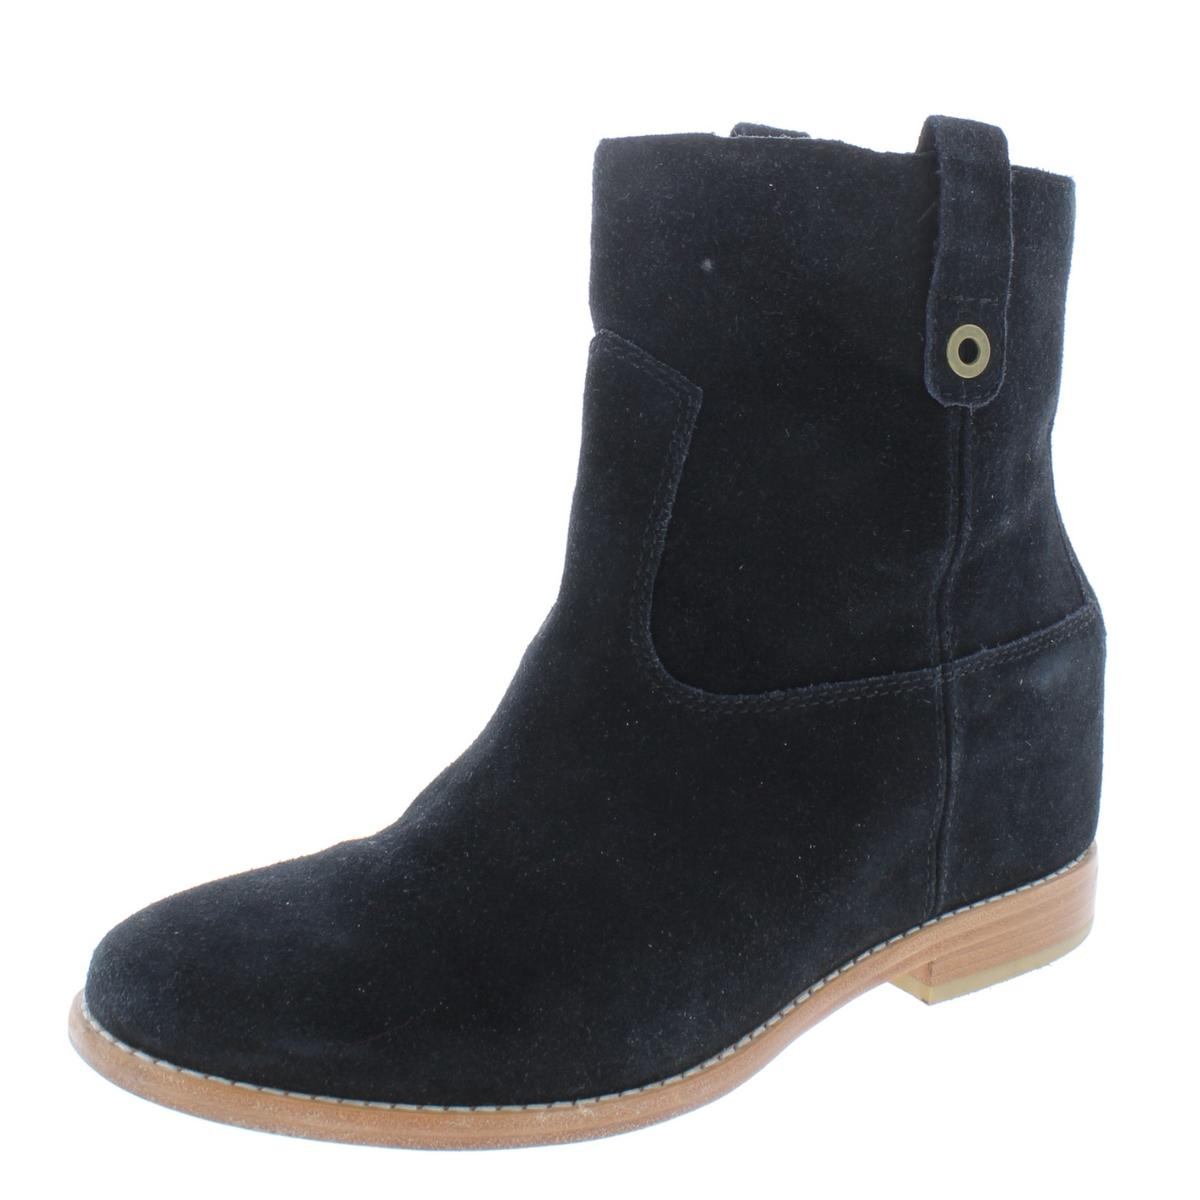 Cole Haan Womens Zillie Black Suede Booties shoes 8 Medium (B,M) BHFO 6040